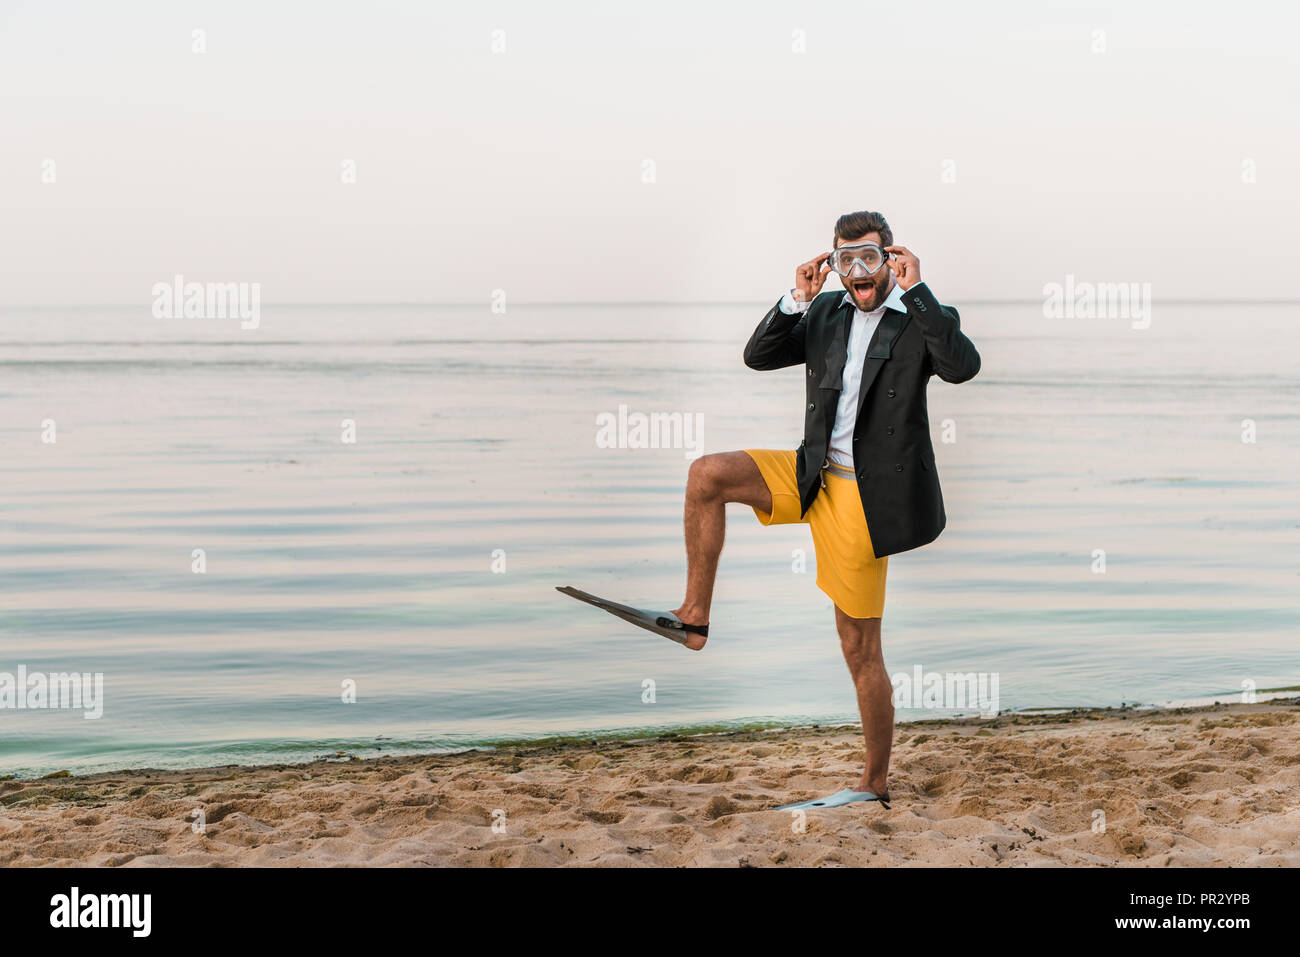 surprised man in black jacket, shorts and flippers touching swimming mask on beach near sea - Stock Image